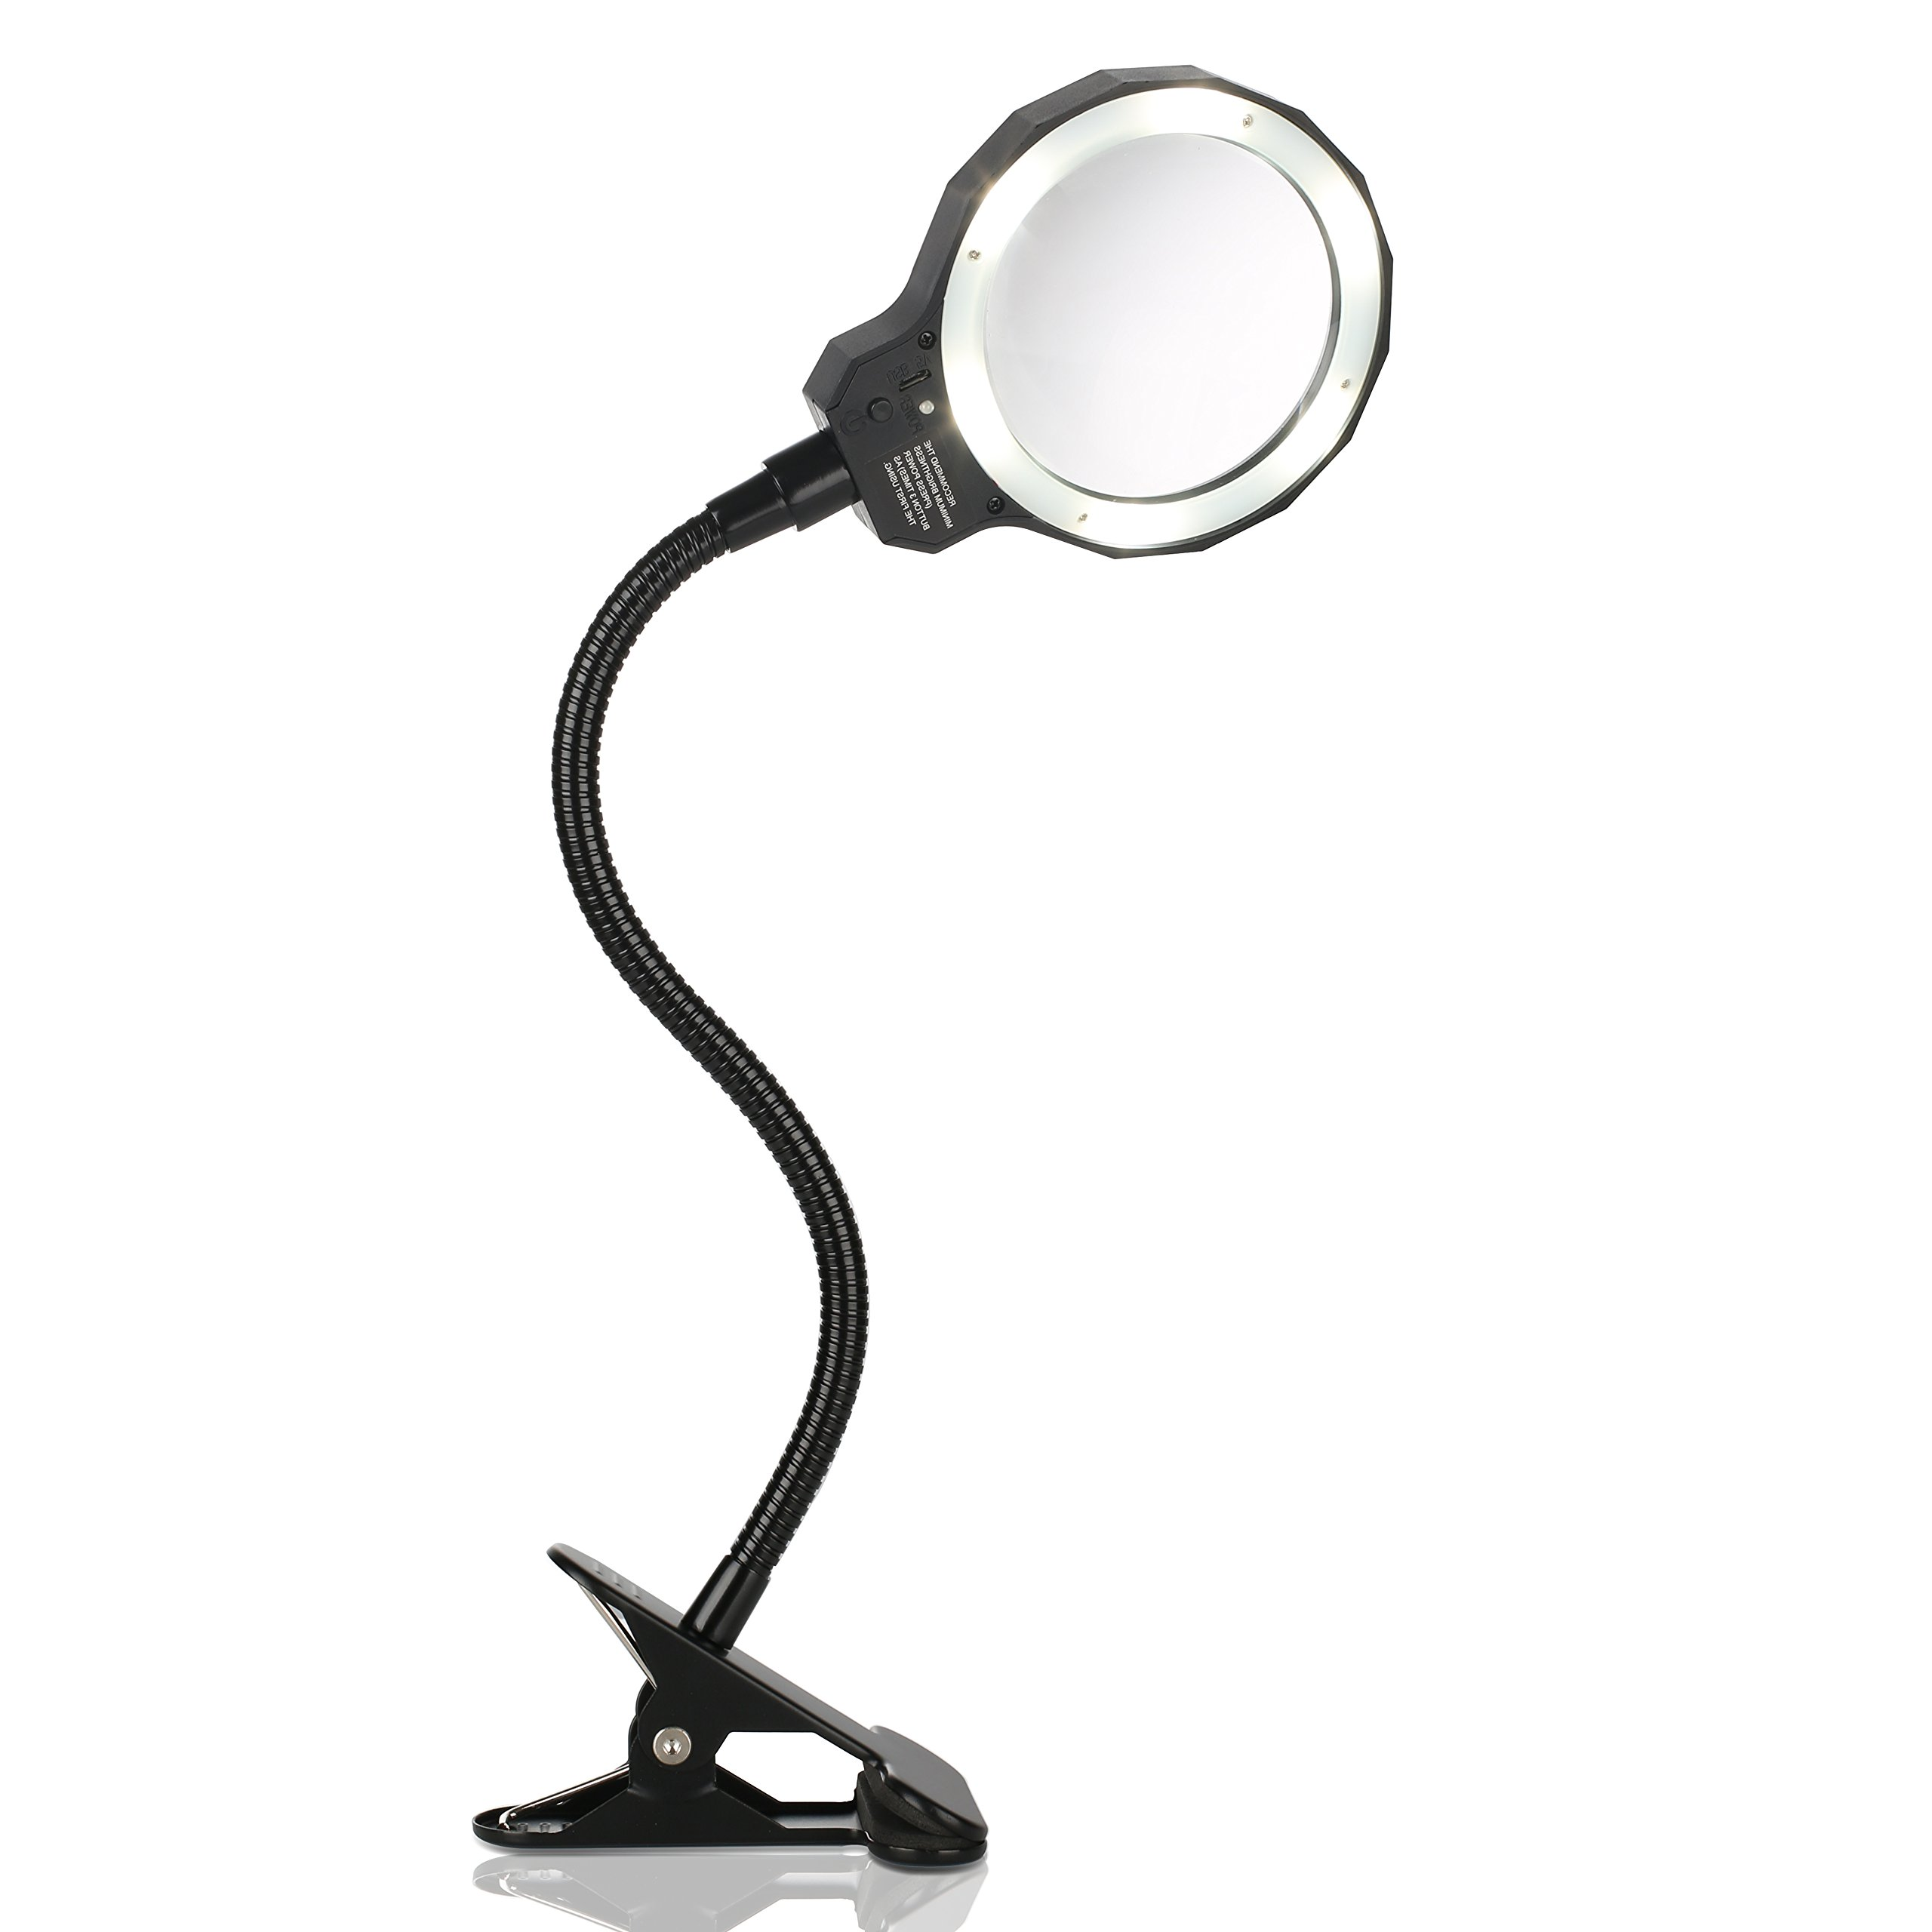 Daylight LED 3X Magnifying Lamp Magnifying Glass with Light Clip On Illuminated Magnifier Lens with 3 Adjustable Light Settings & Detachable Head